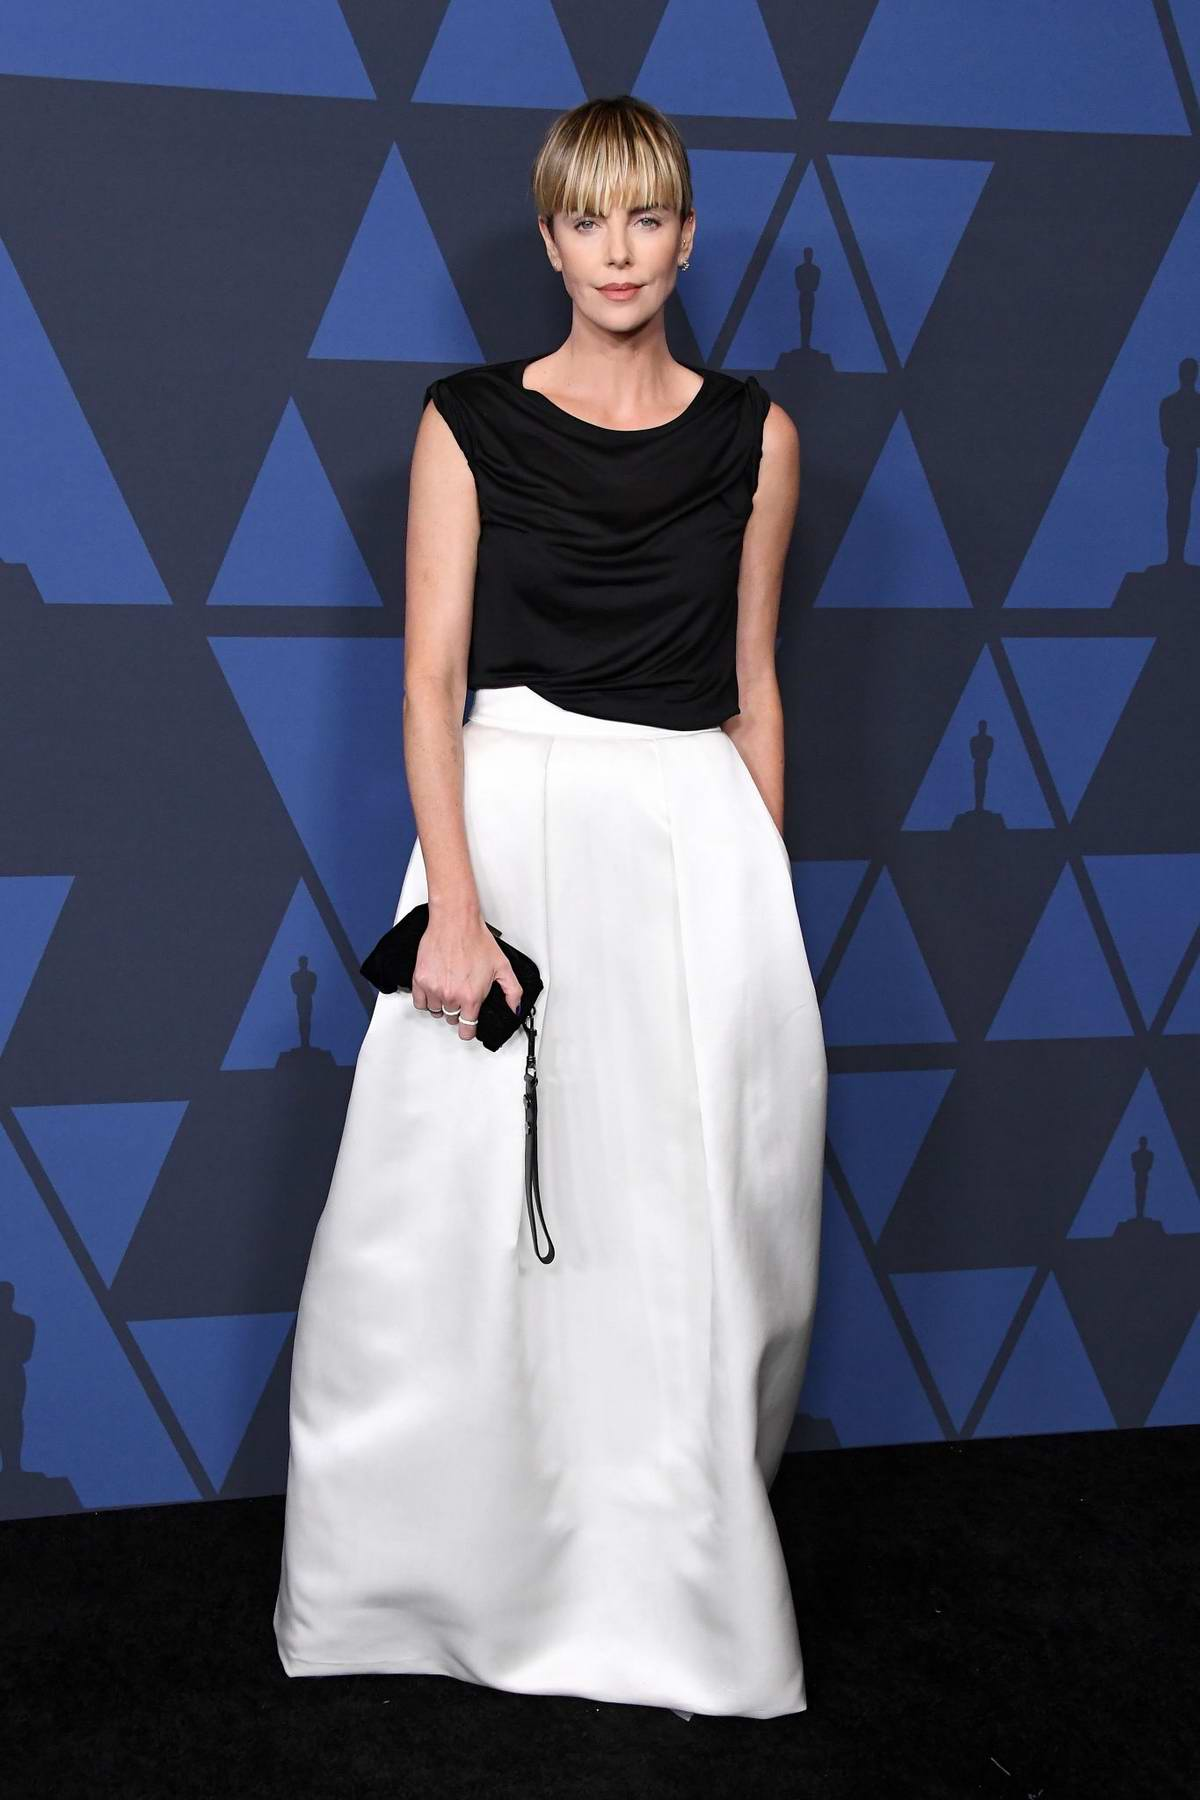 Charlize Theron attends the Academy of Motion Picture Arts and Sciences' 11th Annual Governors Awards in Hollywood, California